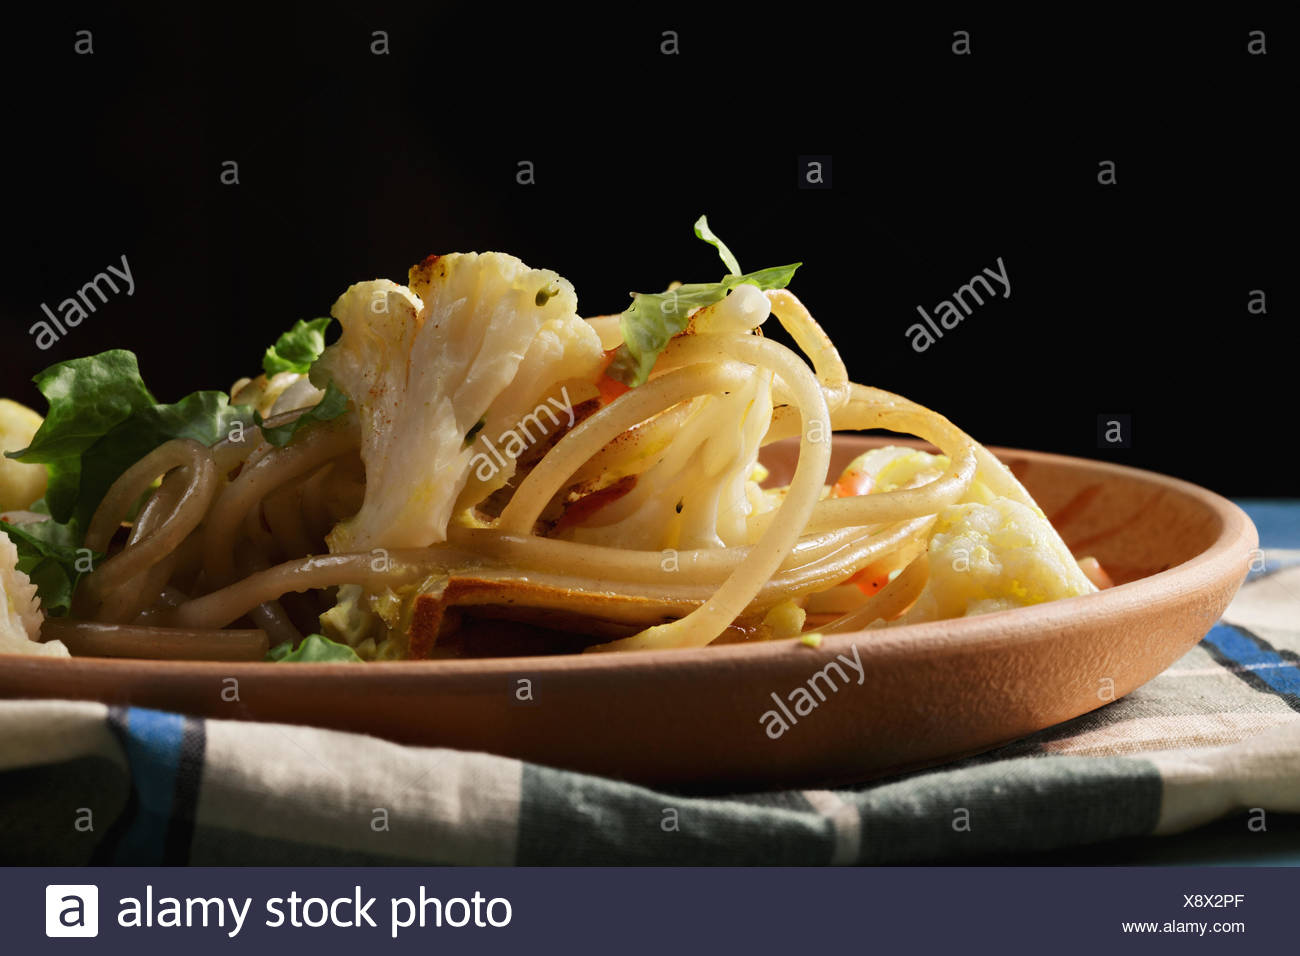 Pasta with cauliflower in darkness - Stock Image